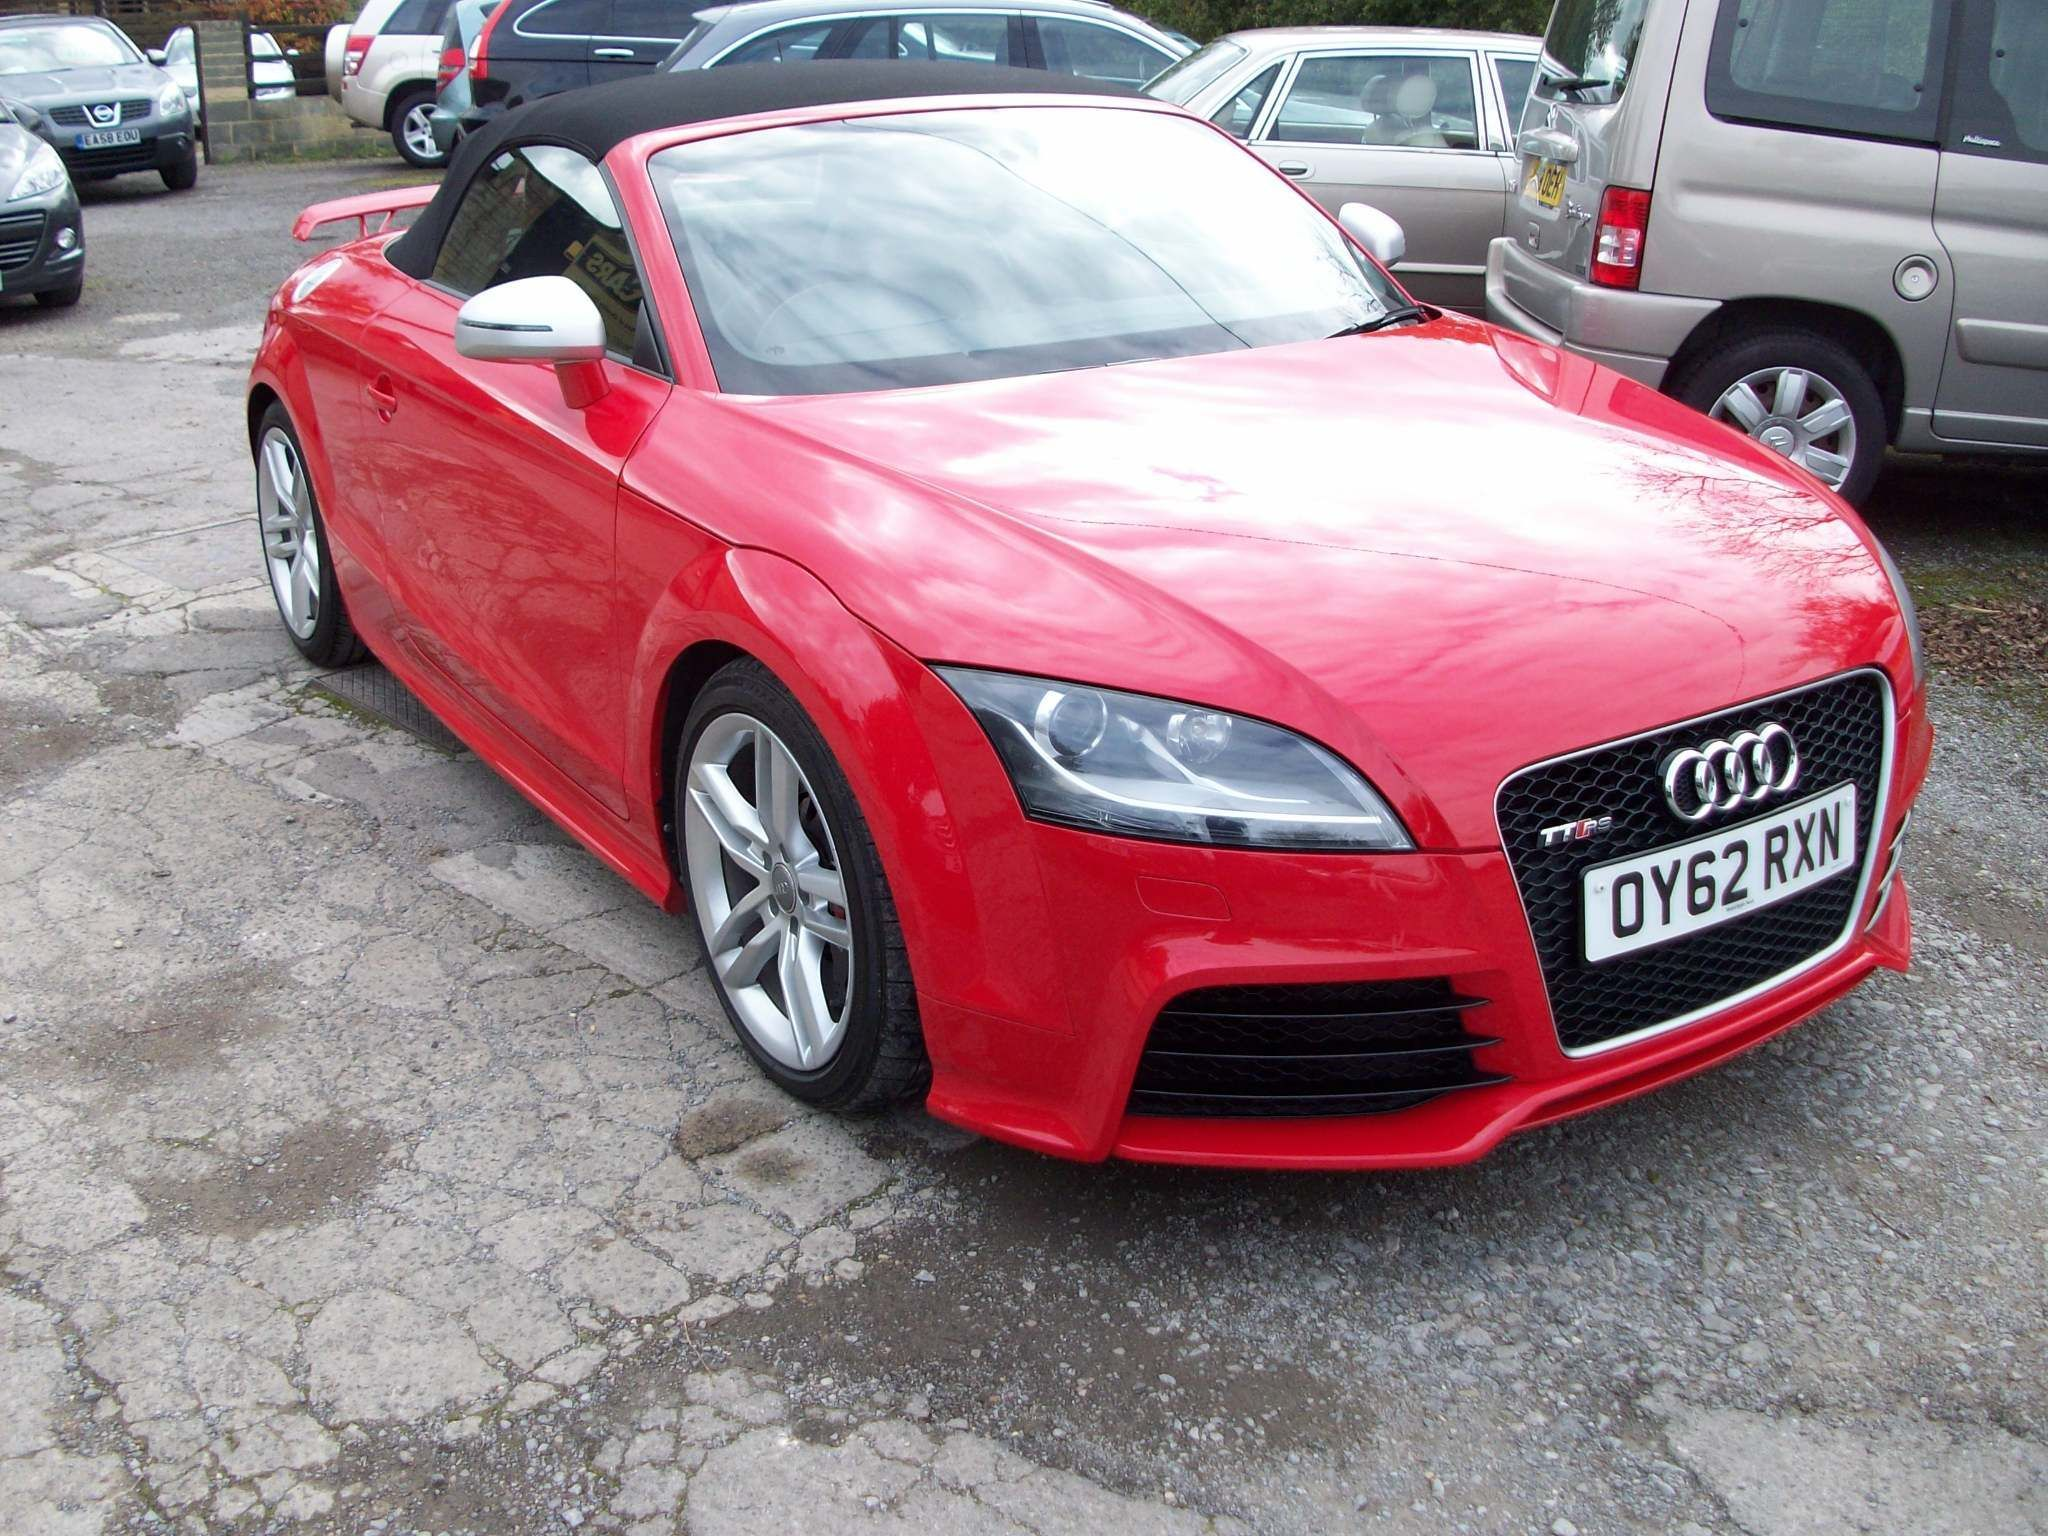 Red Audi Tt Rs Used Cars For Sale Autotrader Uk